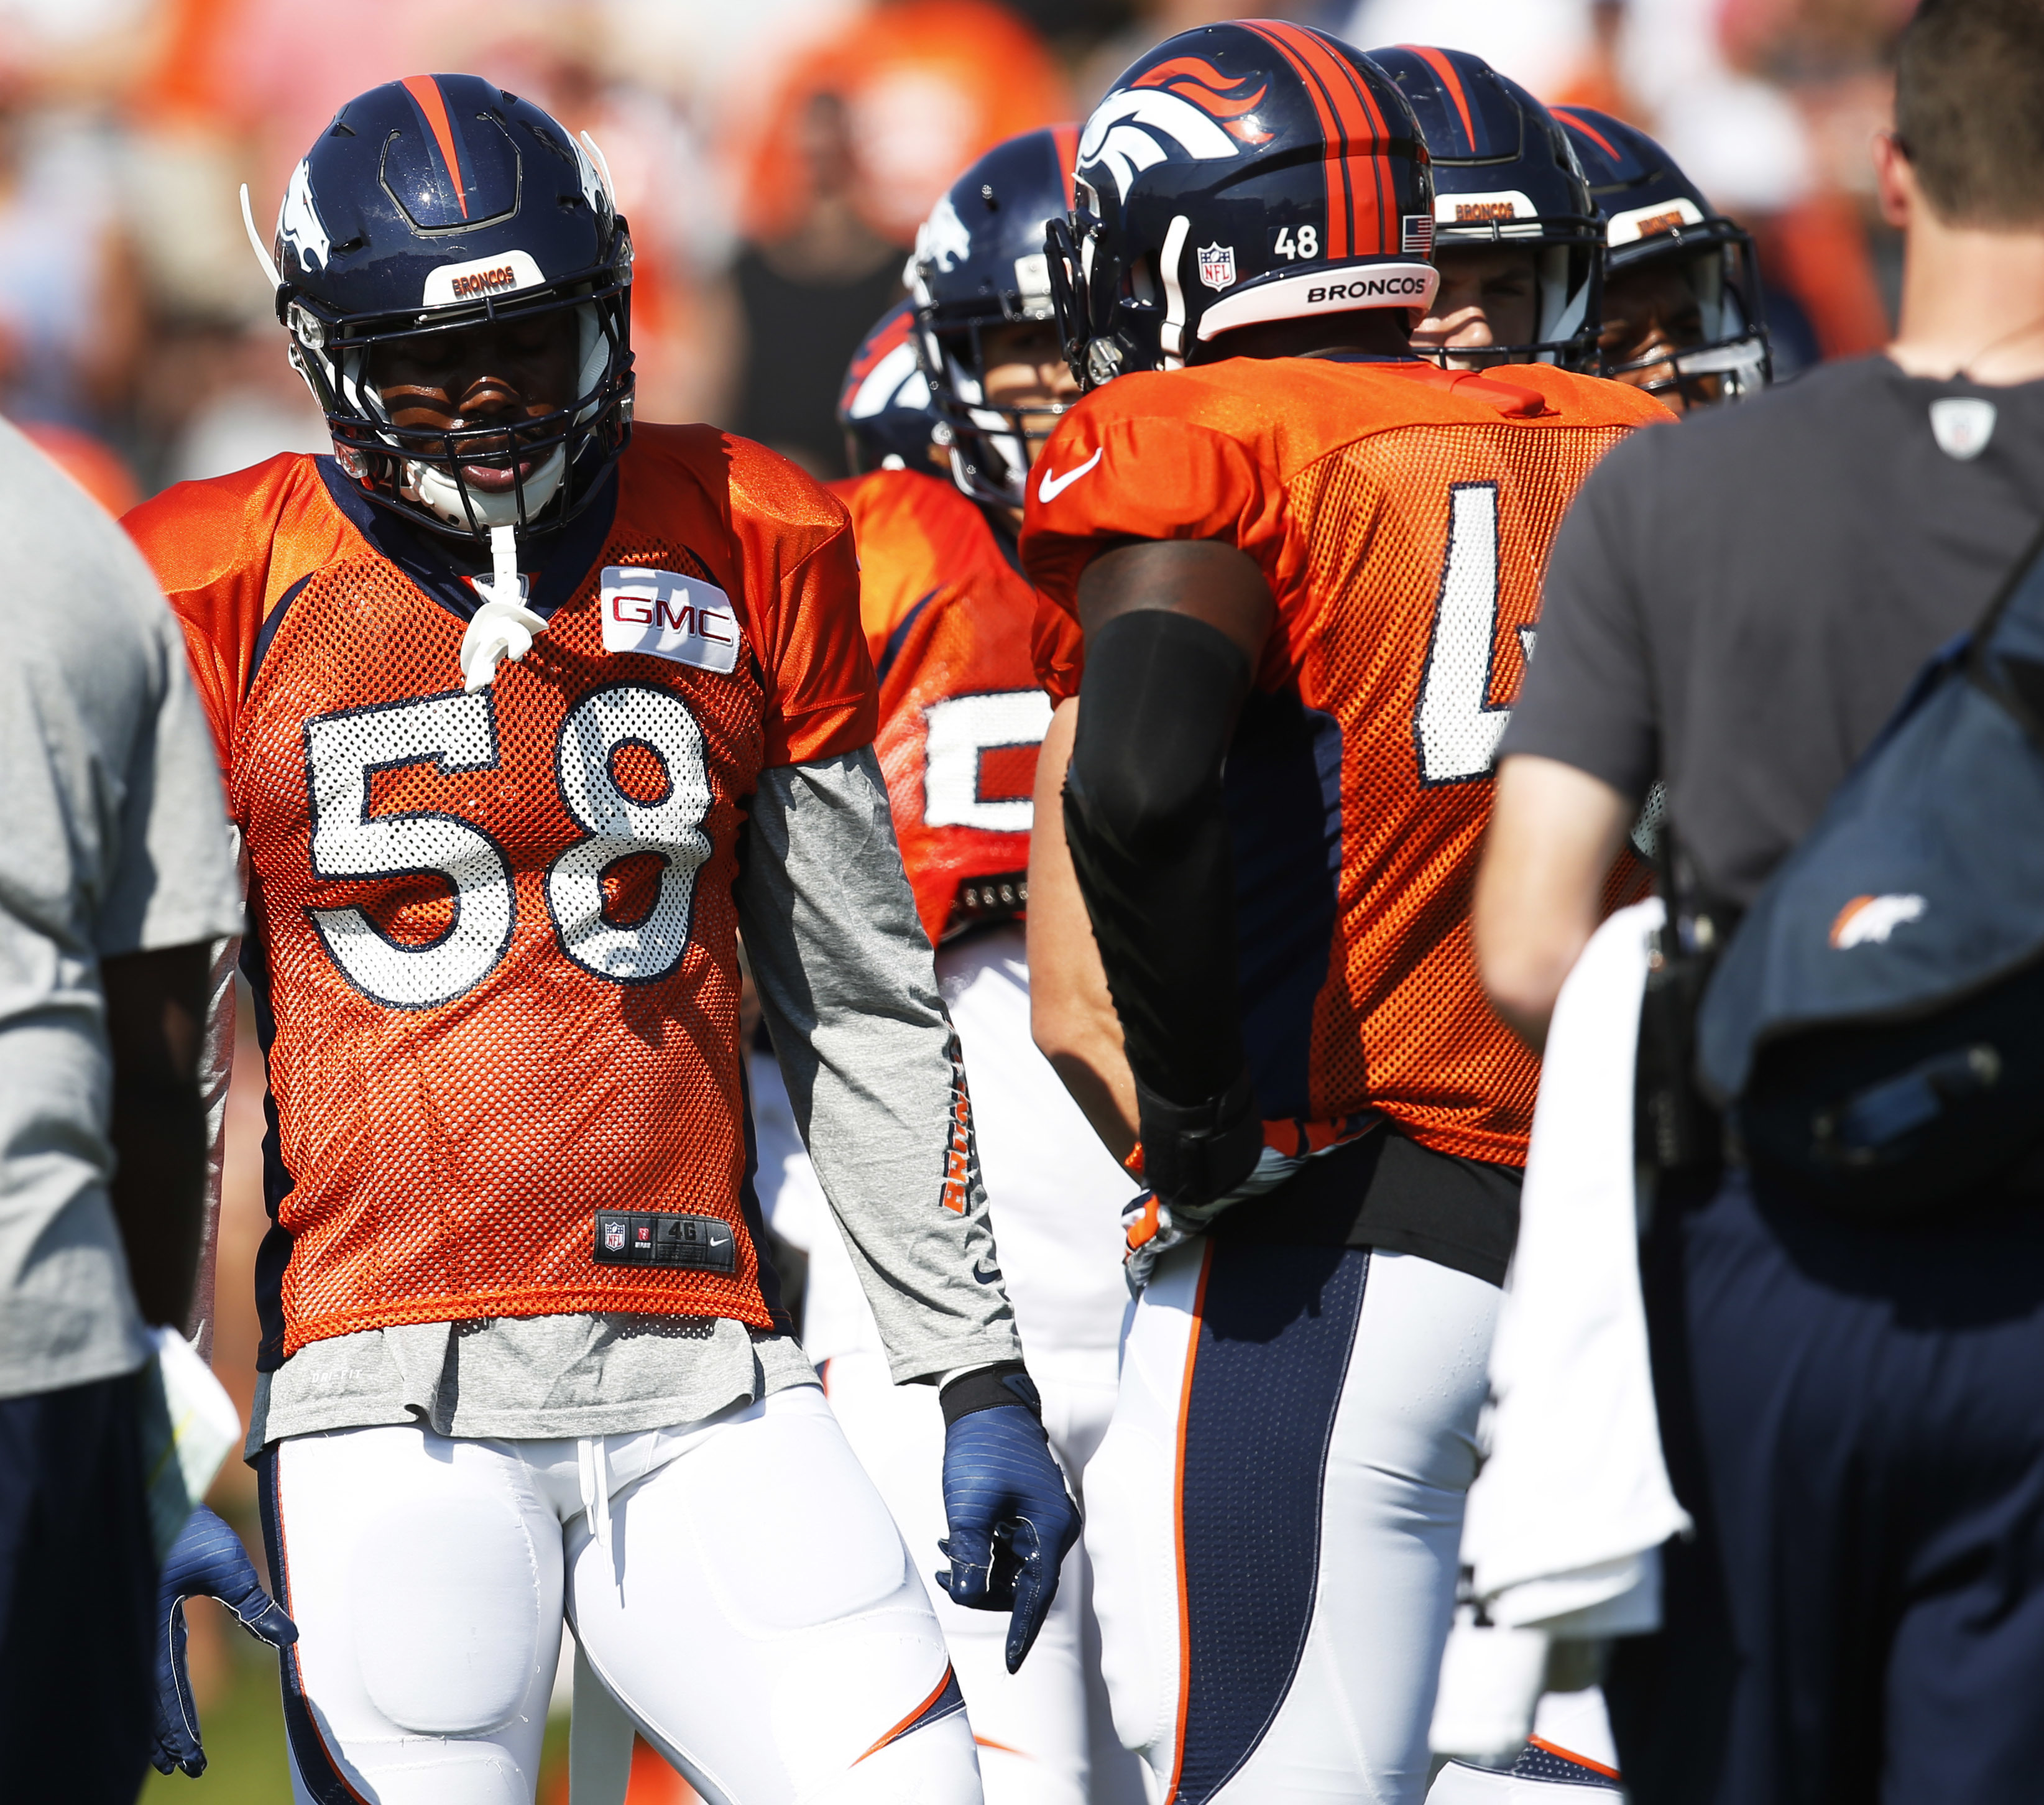 Denver Broncos outside linebackers Von Miller, left, and Shaquil Barrett confer as they take part in drills during the team's NFL football training camp Sunday, July 31, 2016 in Englewood, Colo. (AP Photo/David Zalubowski)